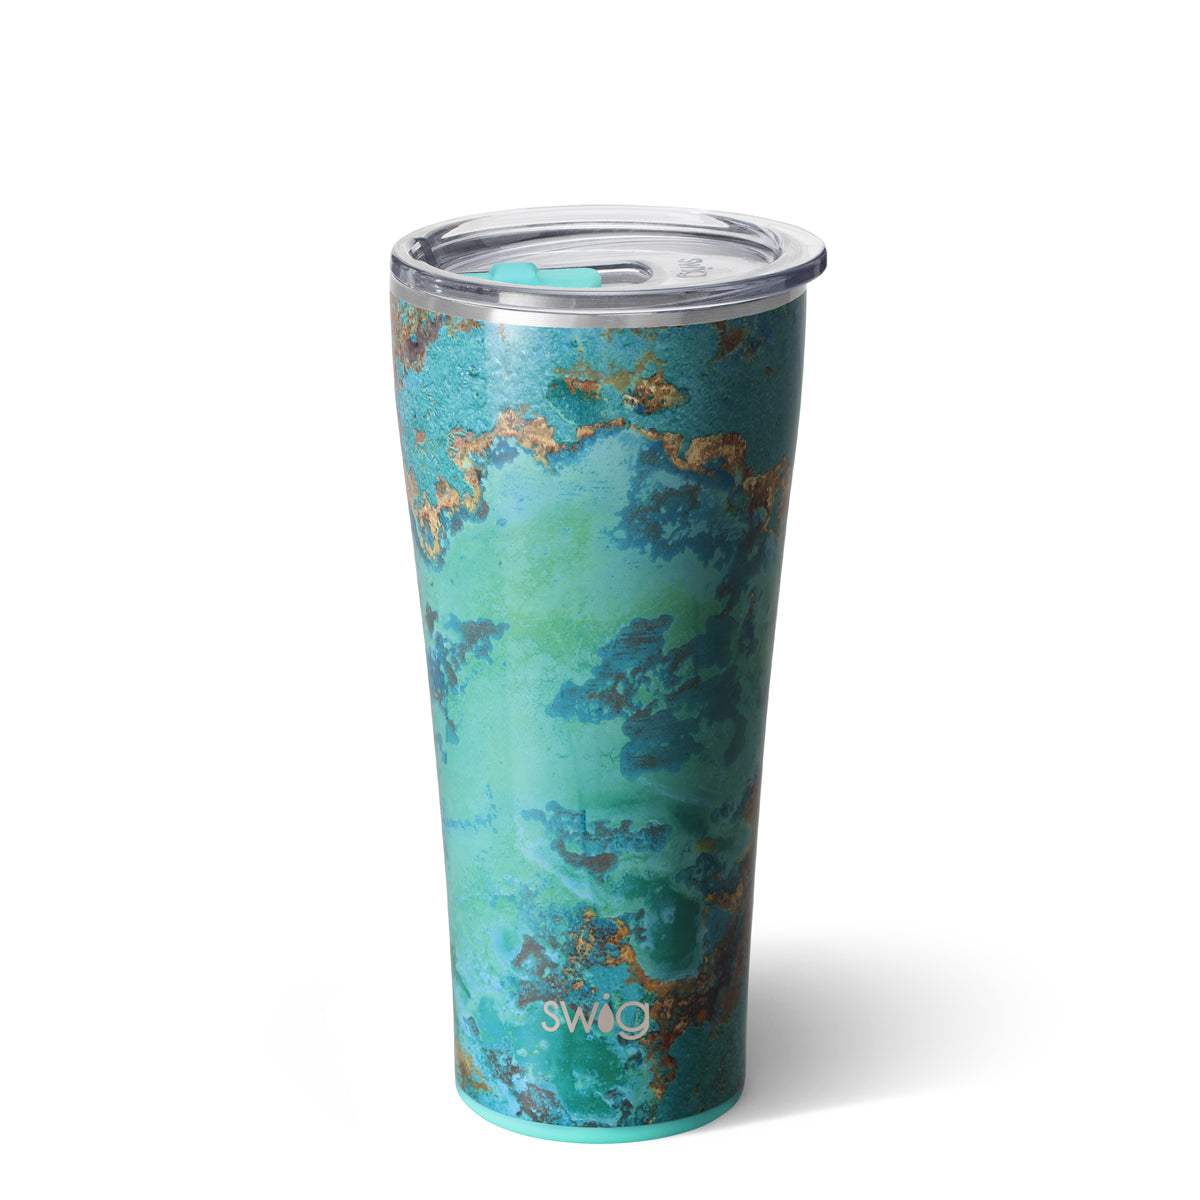 Swig 32oz Copper Patina Tumbler